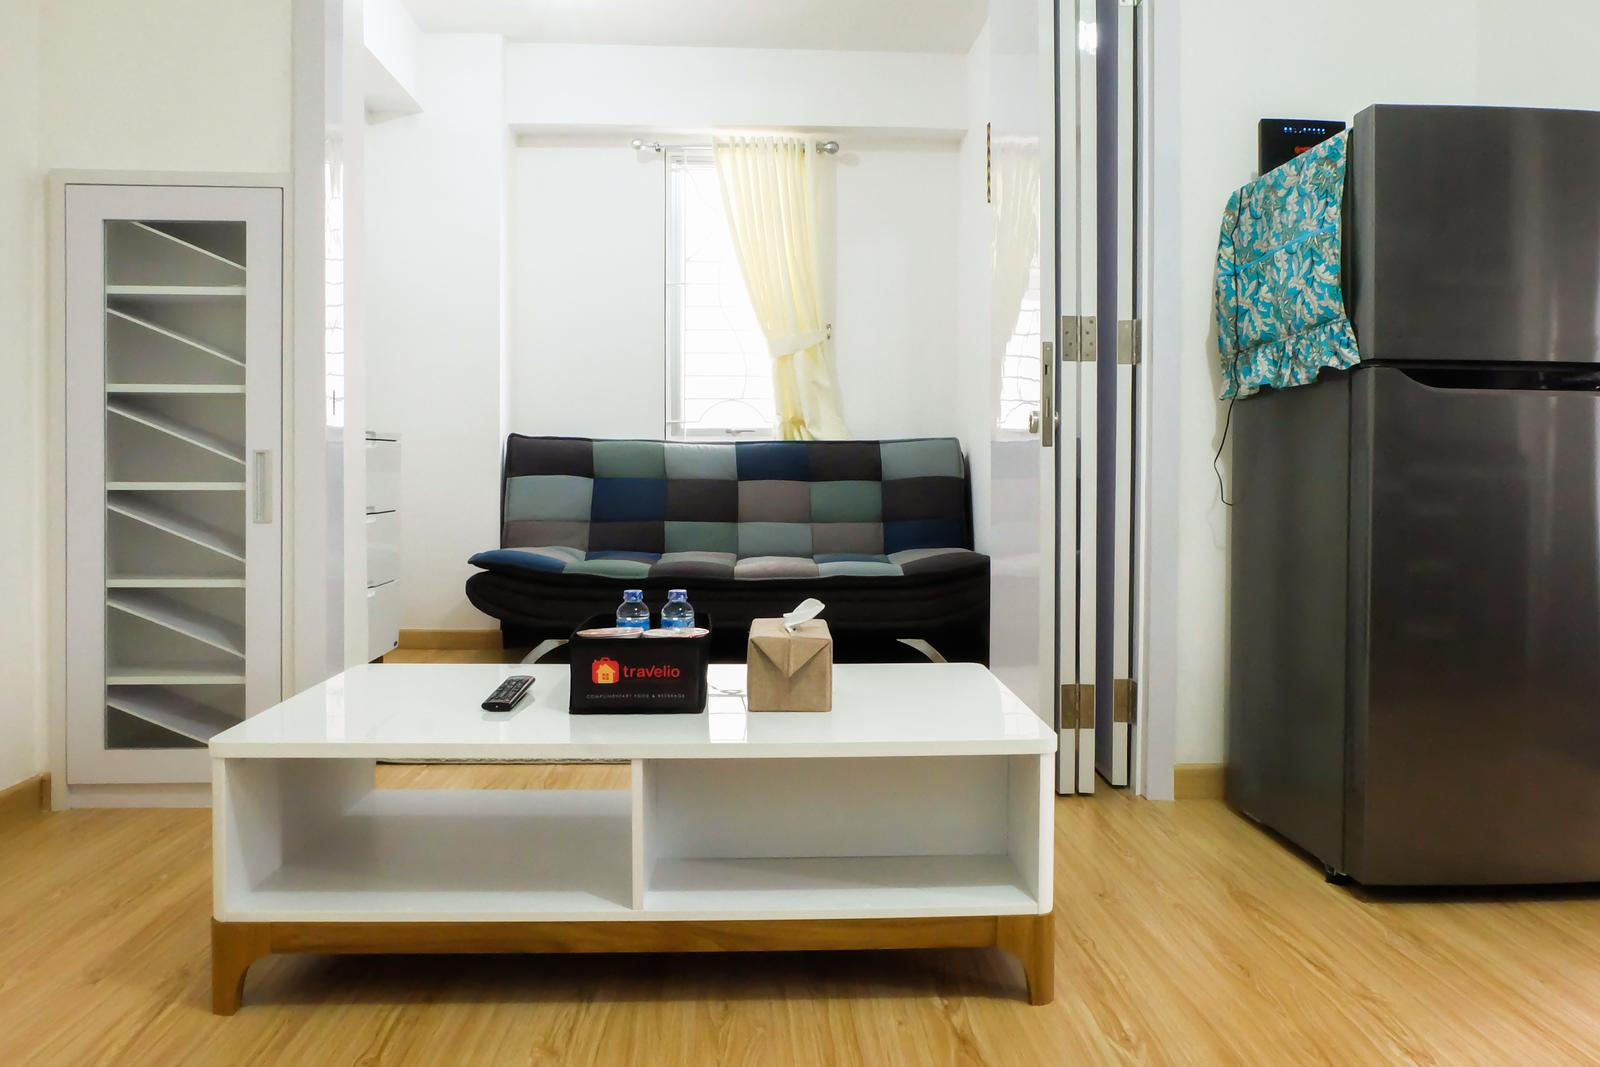 Bassura City Cipinang - Spacious & Clean 1BR Bassura Apartment By Travelio